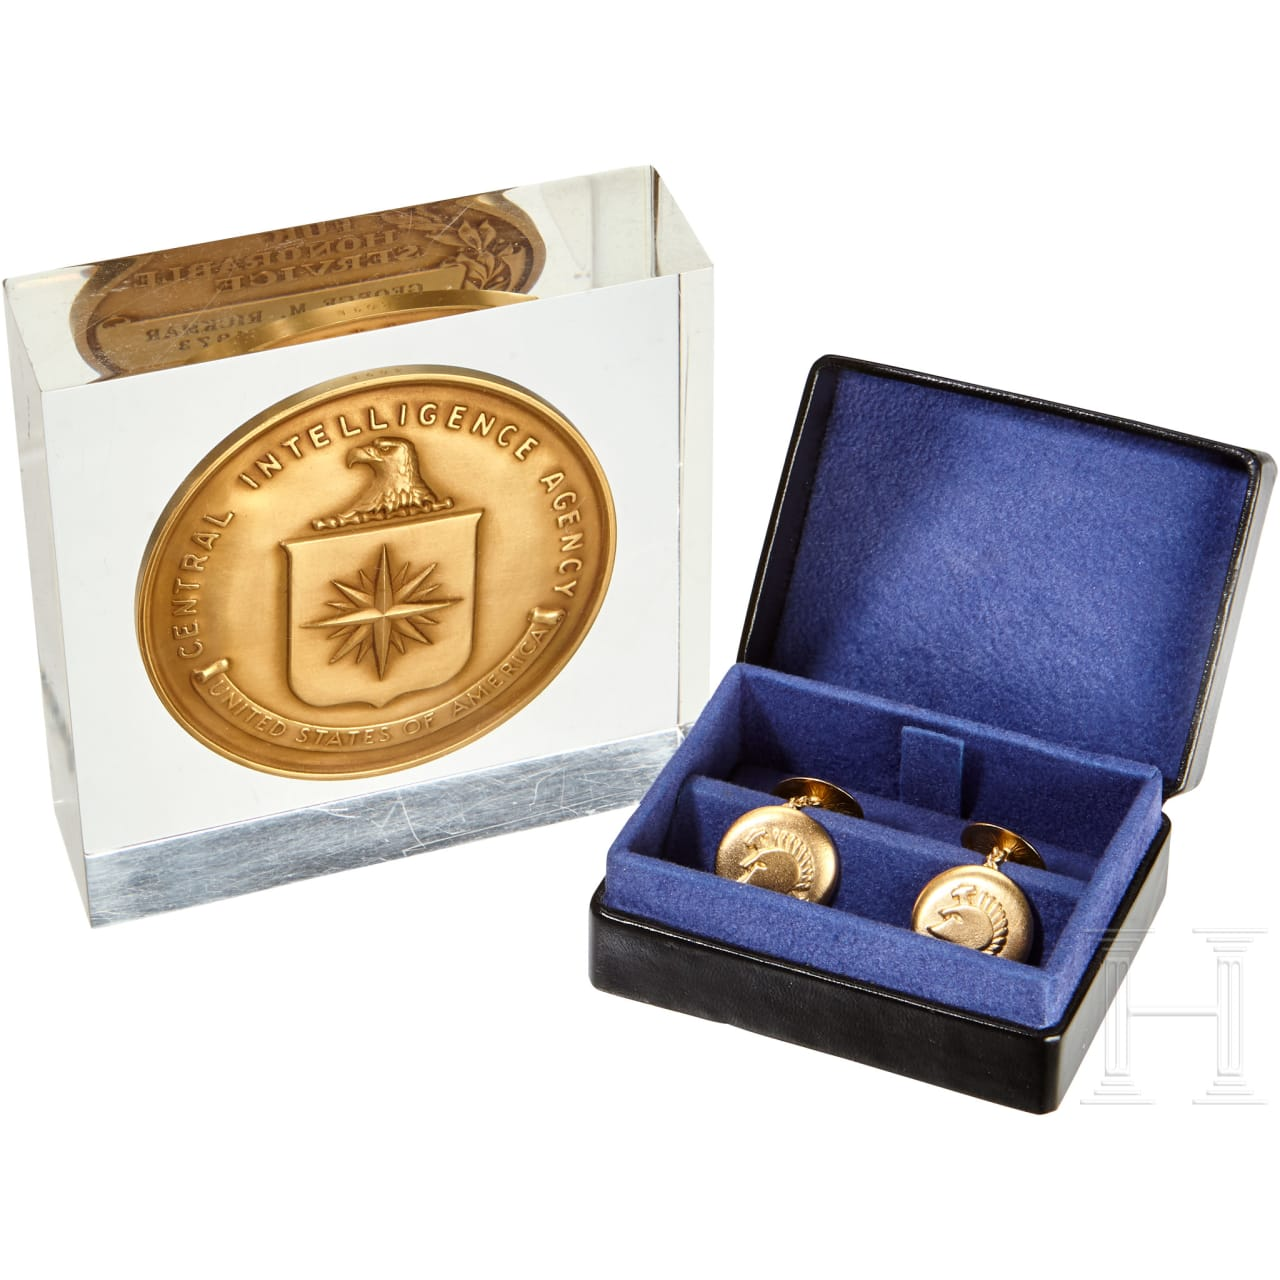 An American CIA Award and Cuff links